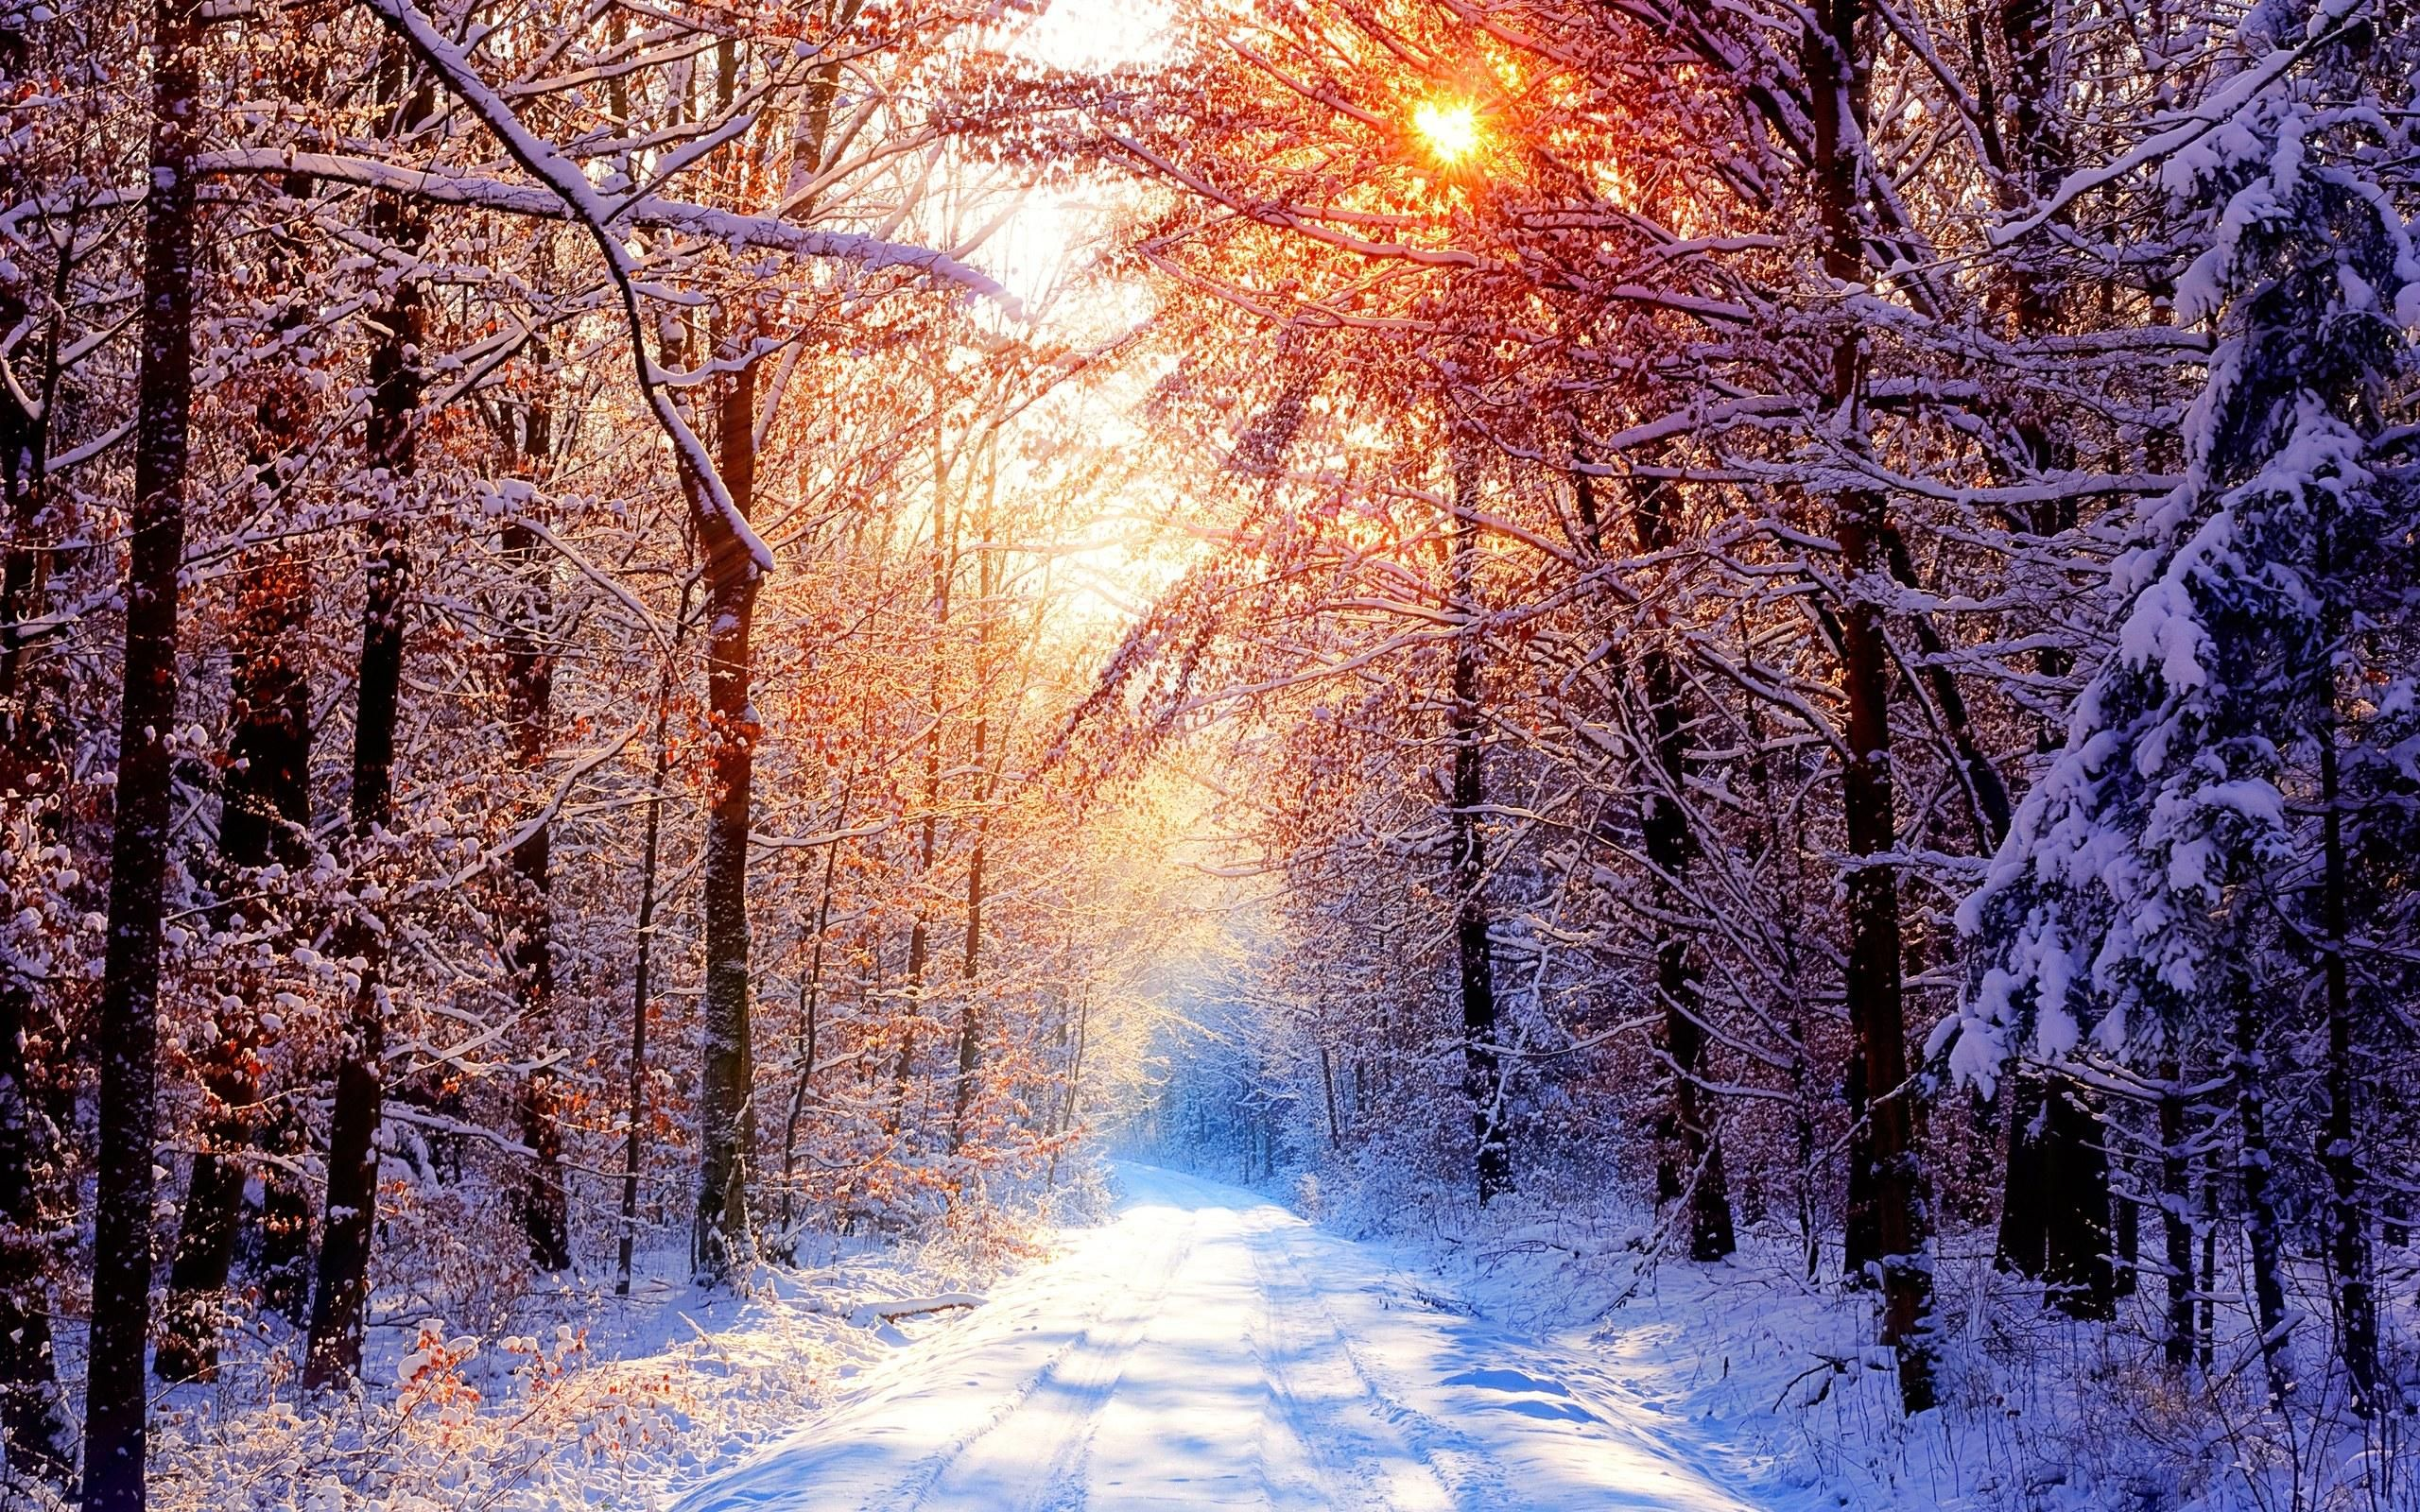 Snow Scene Forest Nature Path Road Snow Winter Wallpaper Beautiful Nature Nature Photography Hd wallpaper winter nature forest path